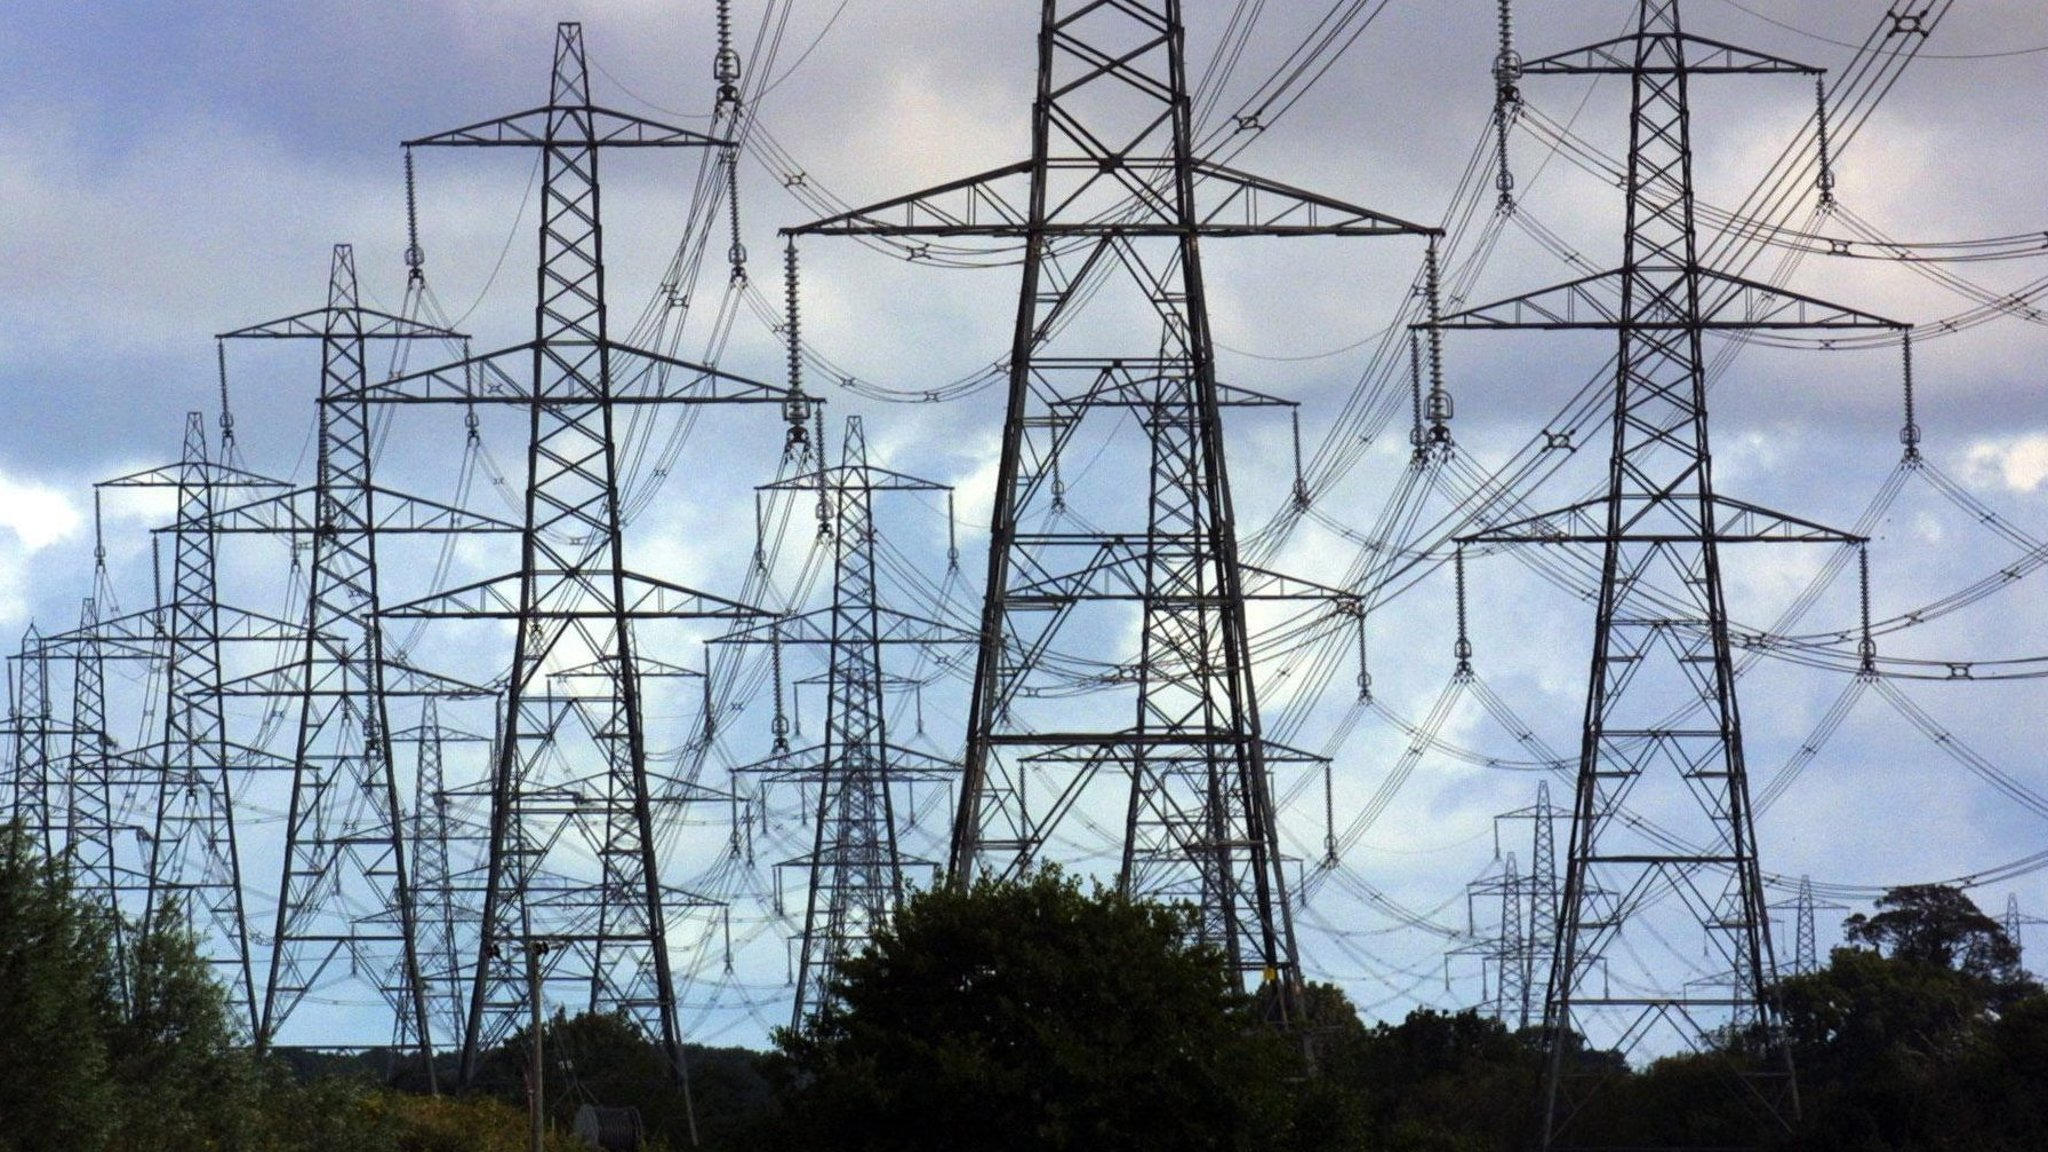 Network companies under scrutiny for rising UK electricity prices ...